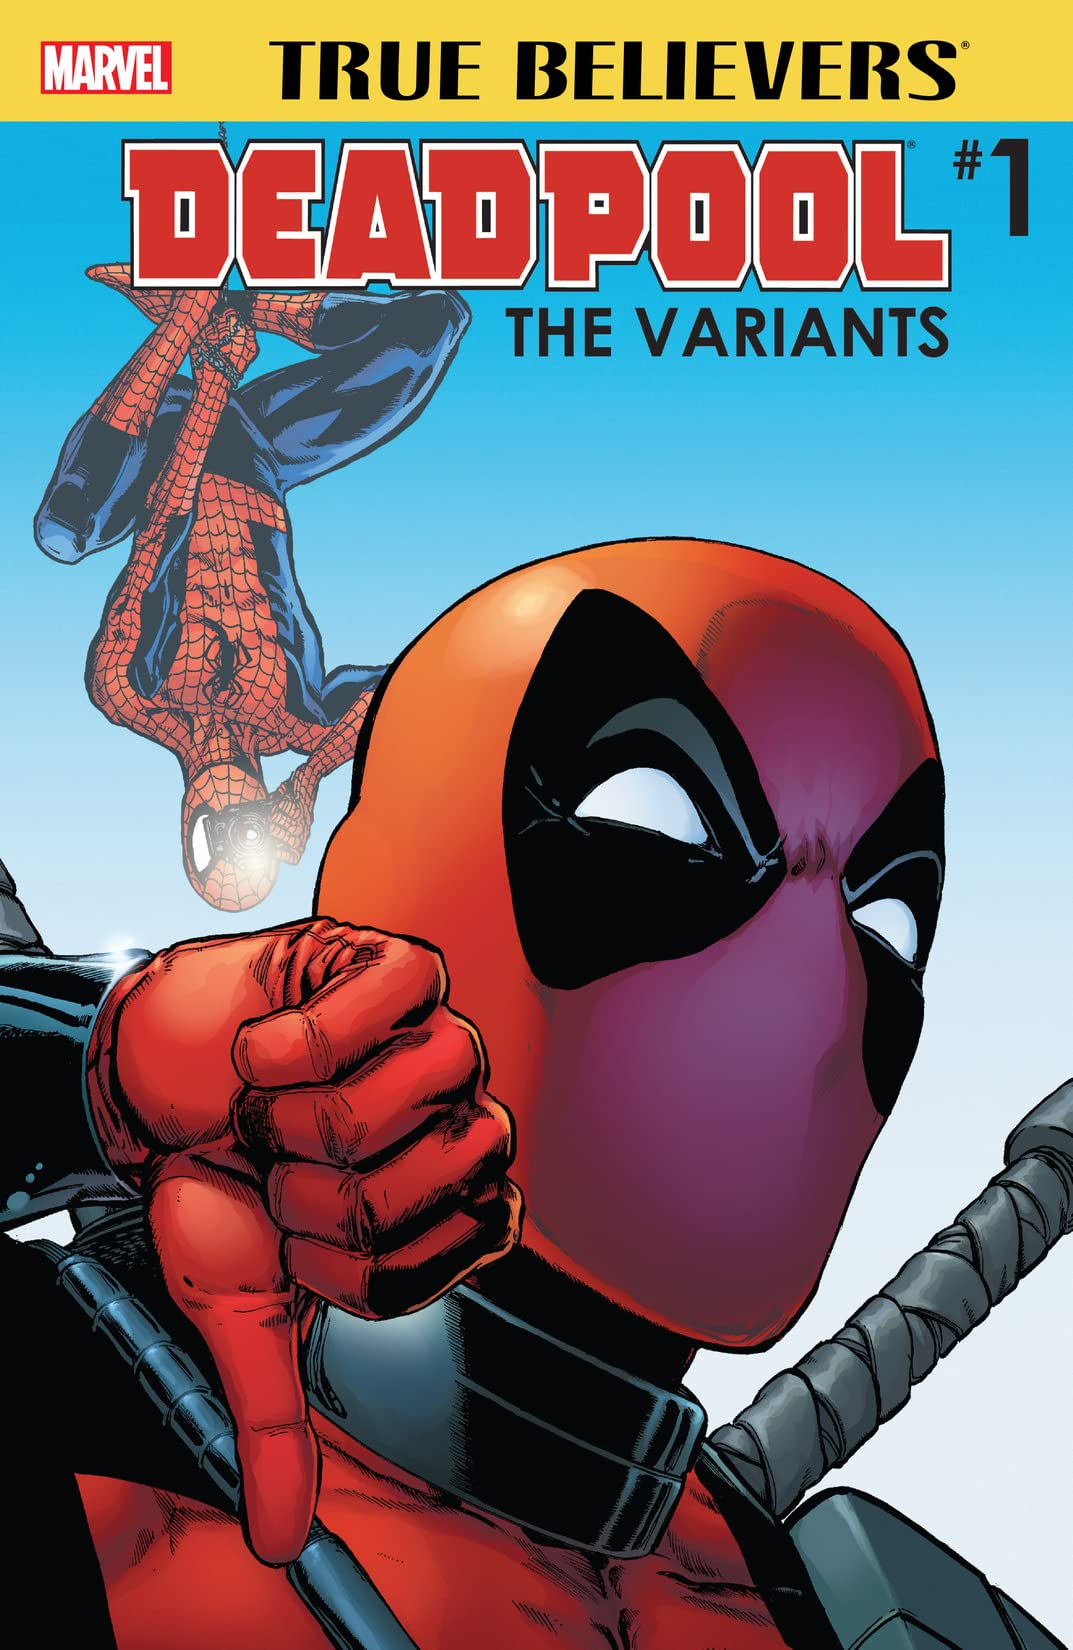 True Believers: Deadpool Variants #1